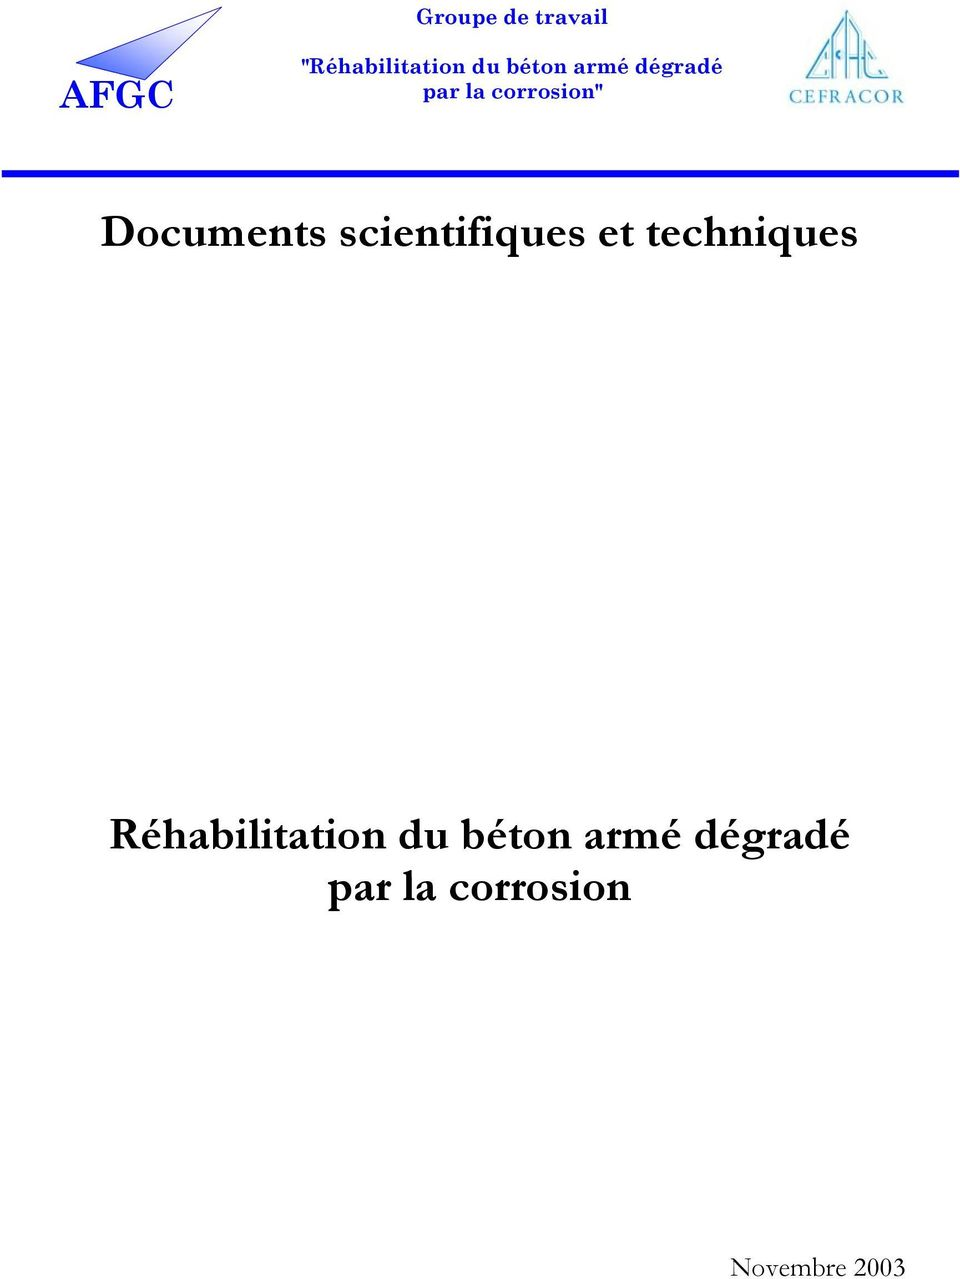 Documents scientifiques et techniques